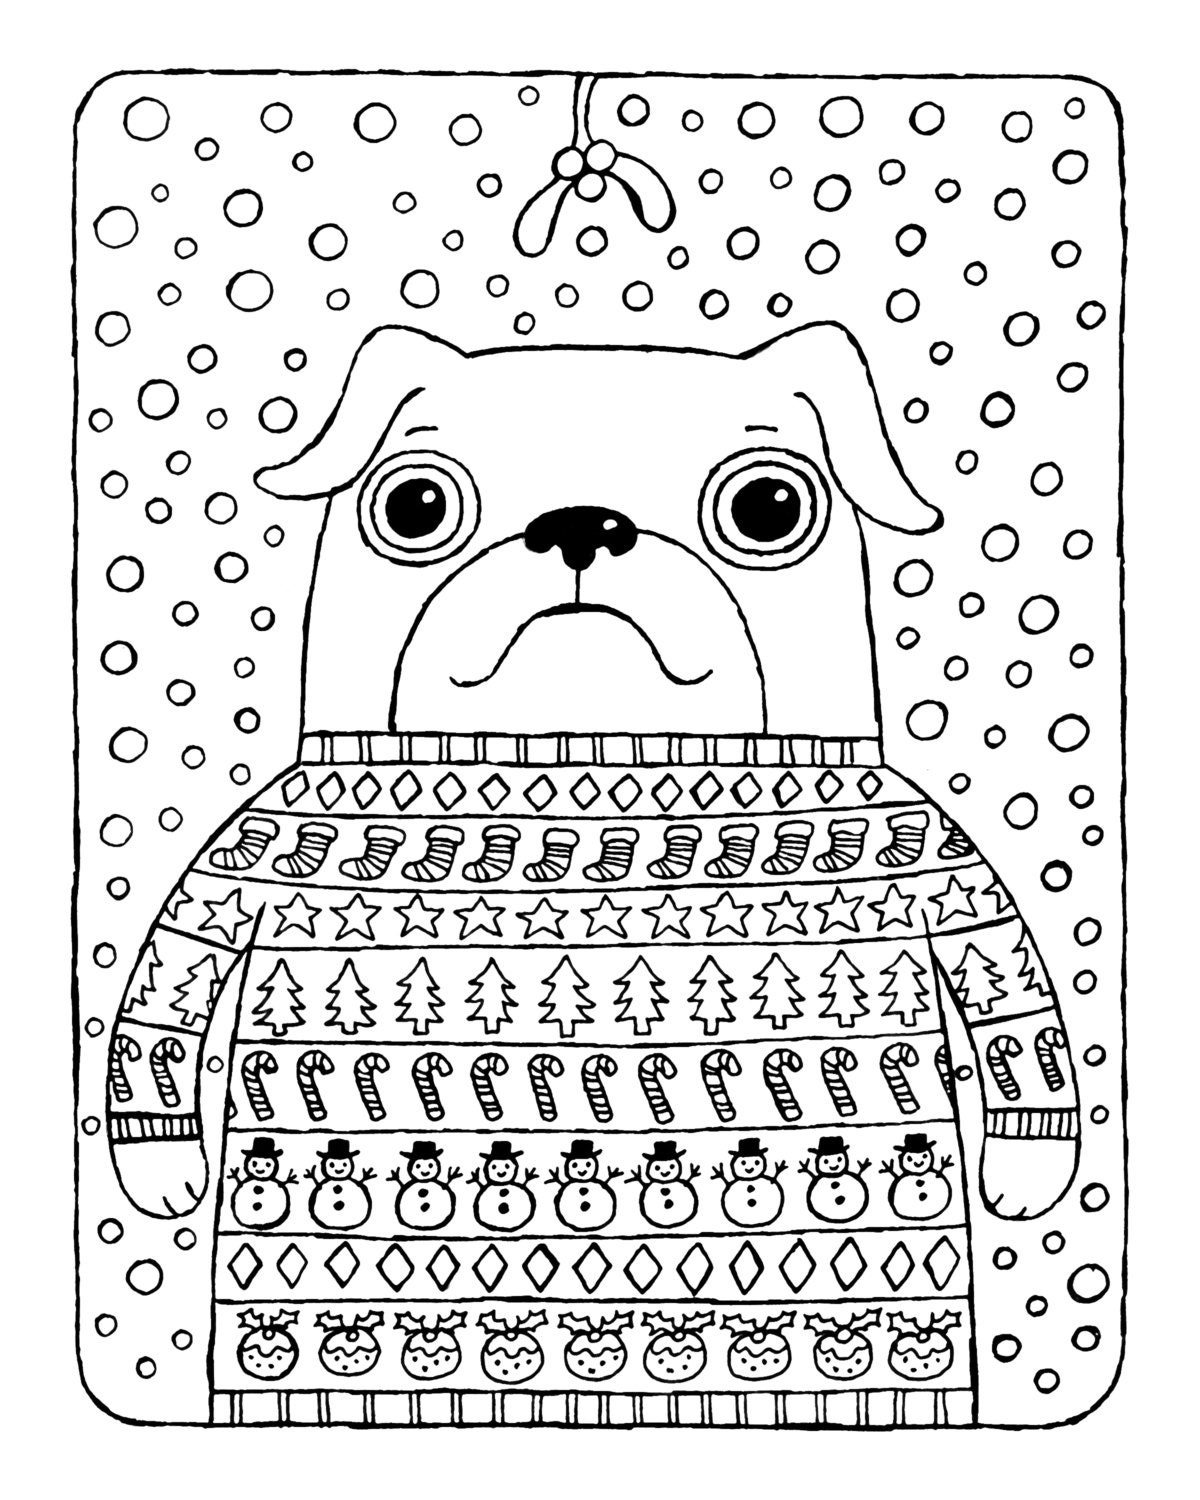 pugs coloring pages to print - photo#17